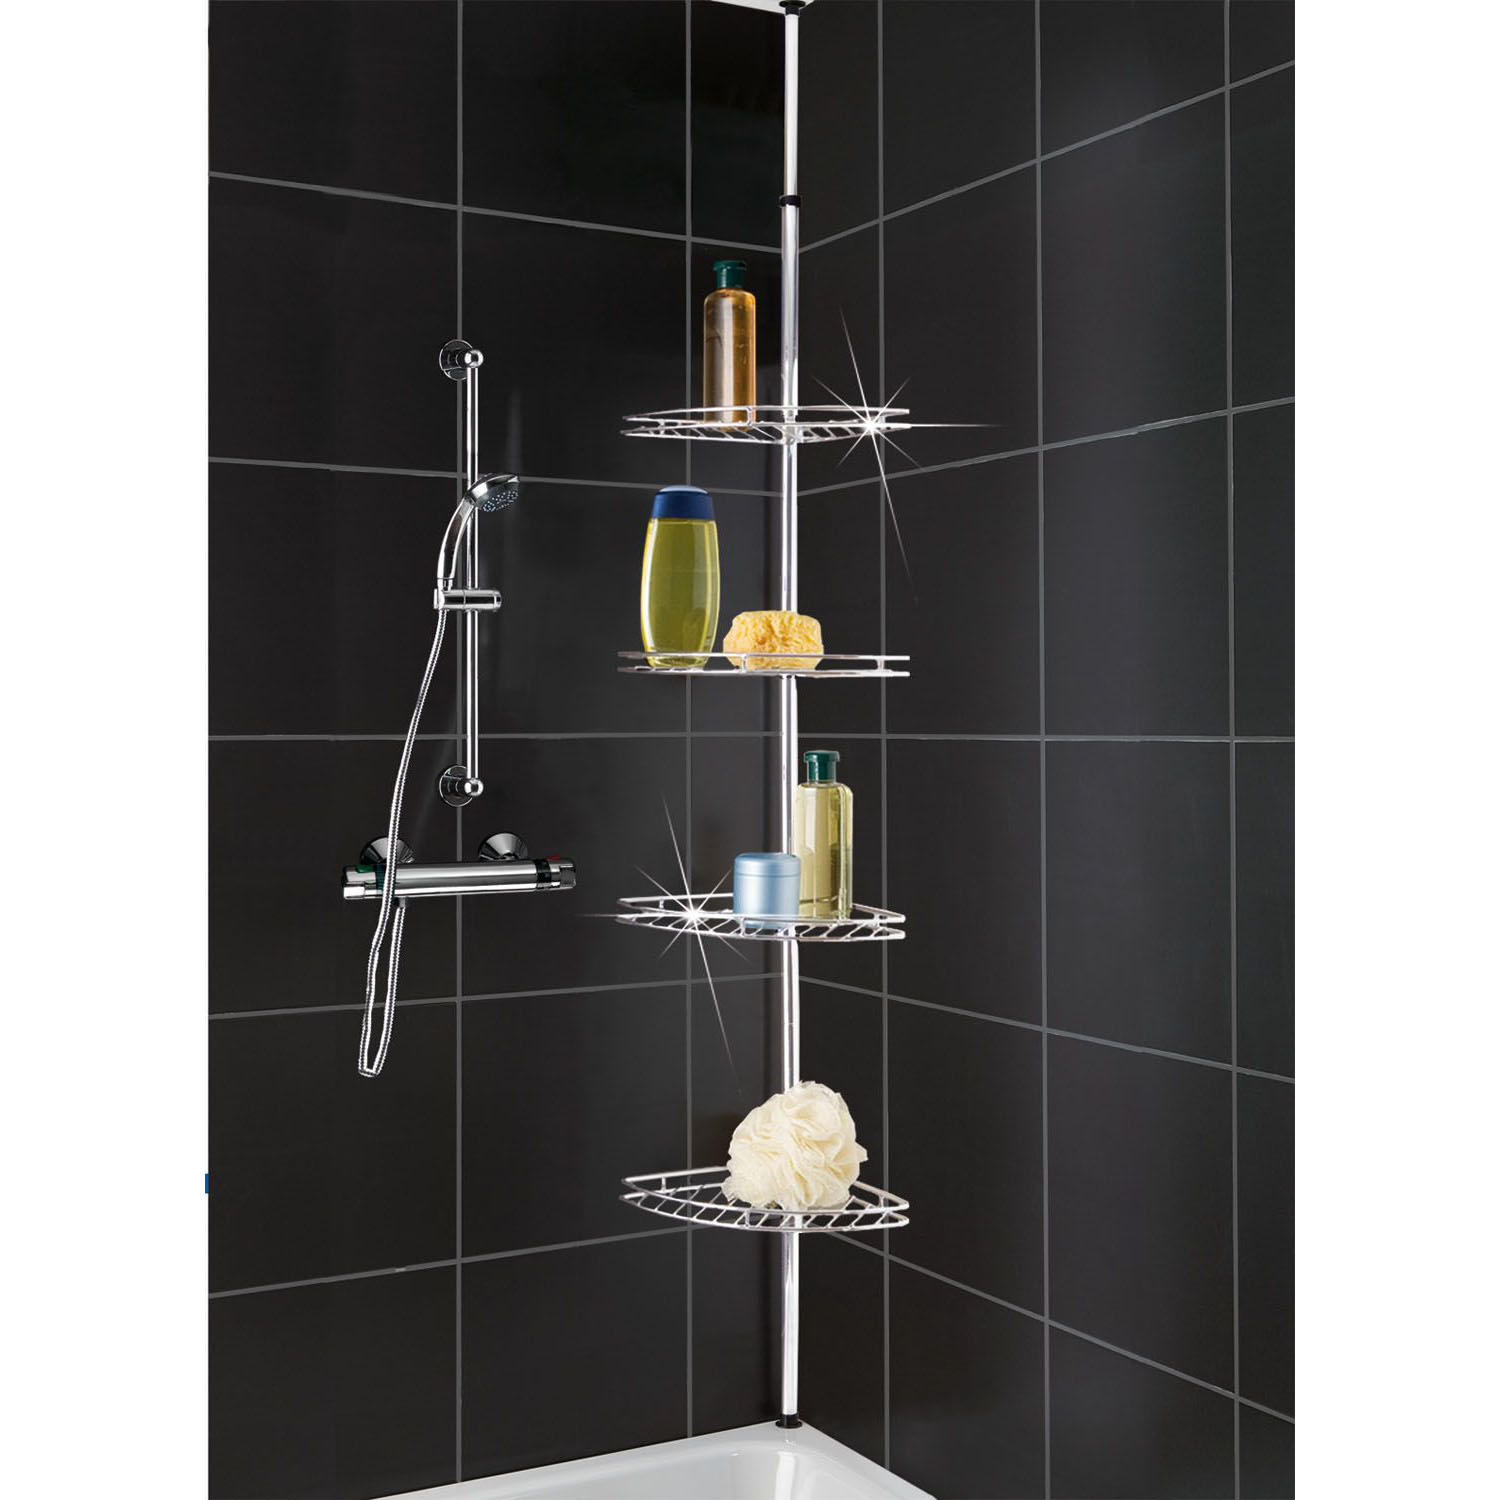 Bathroom Shower Corner Shelves: METAL CORNER SHOWER/BATHROOM BASKET CADDY/SHELF TELESCOPIC